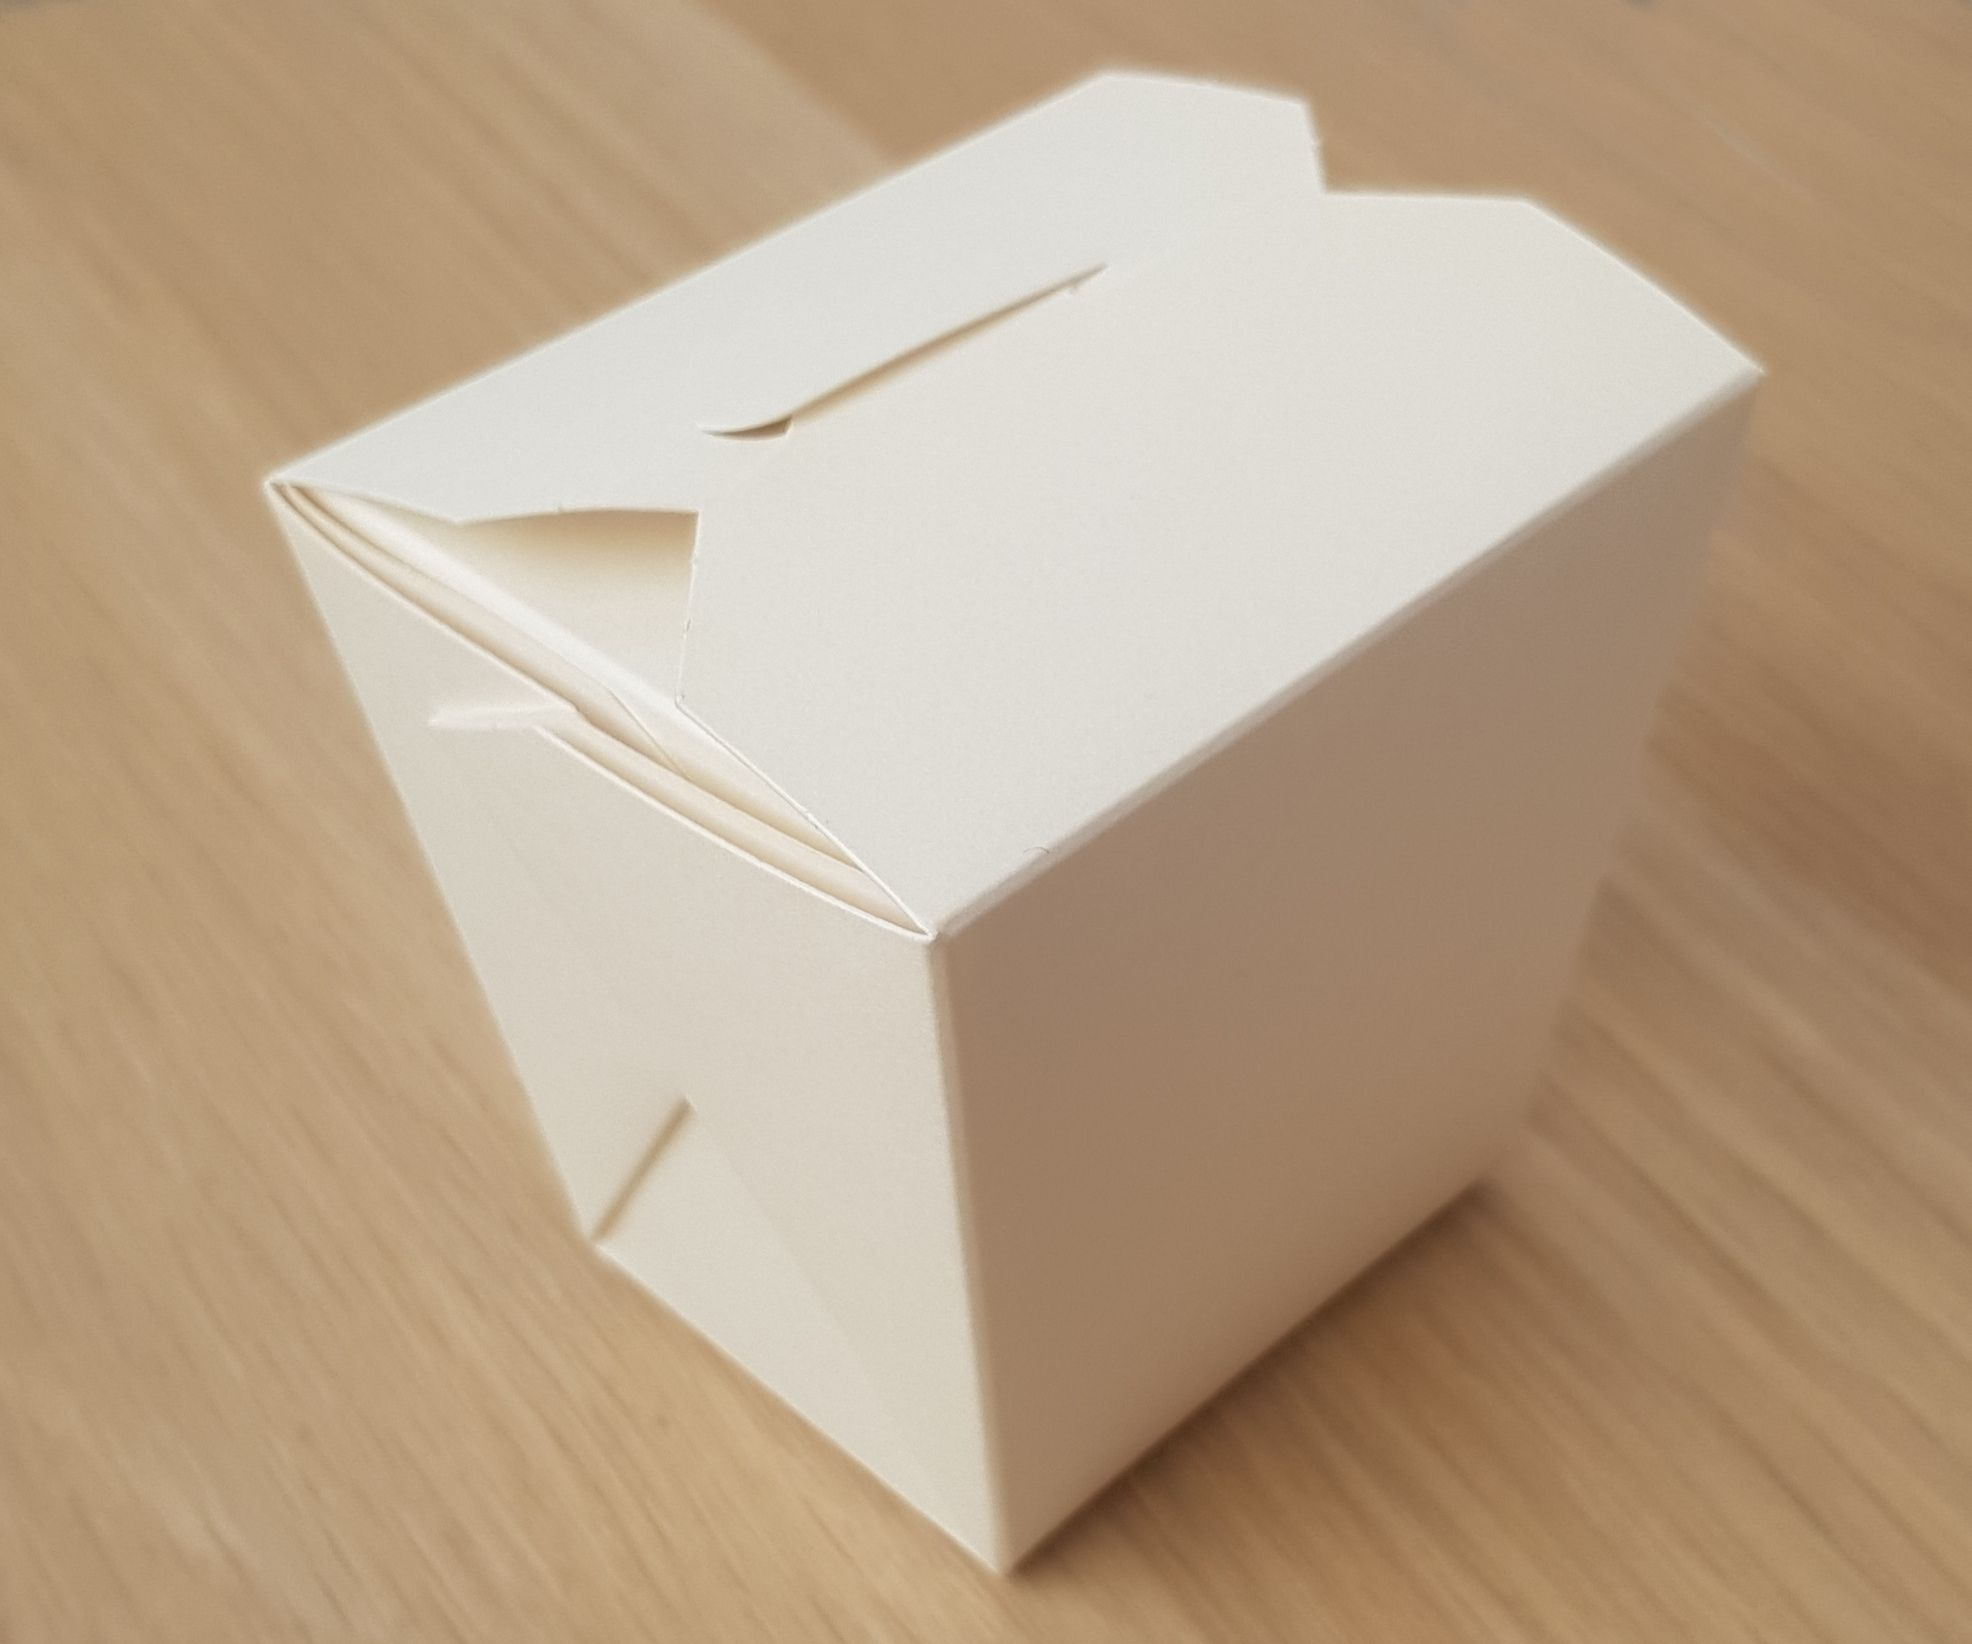 89mm Deep Noodle box, white with PE liner, Base 68x54mm, Top